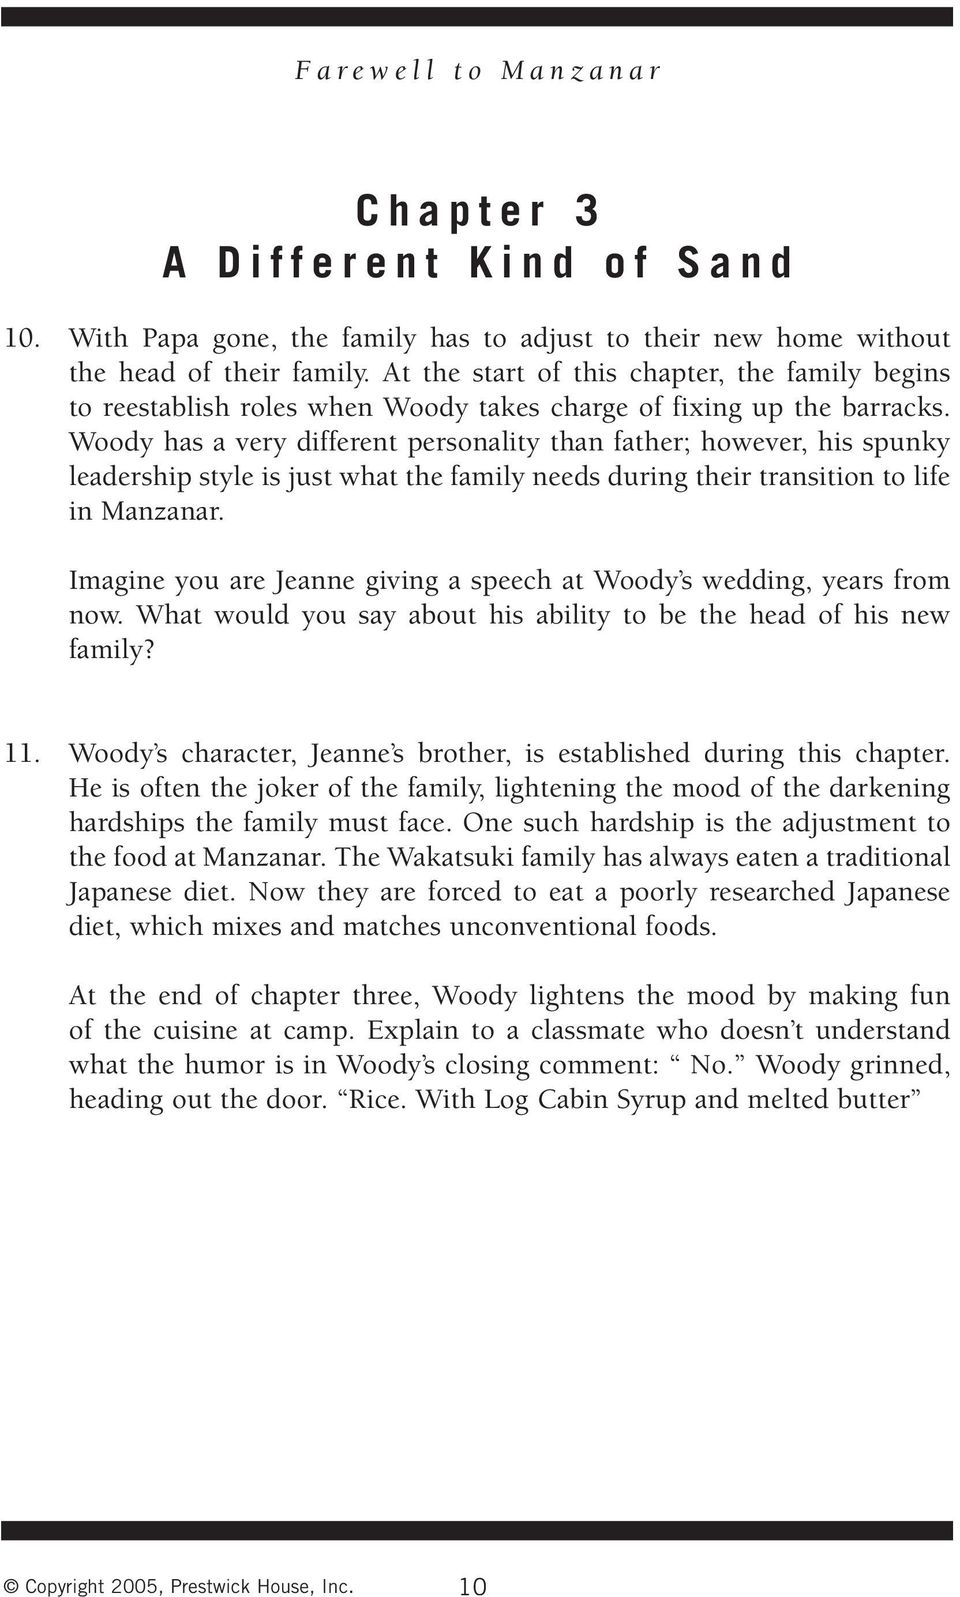 Farewell To Manzanar Pdf Chapter 2